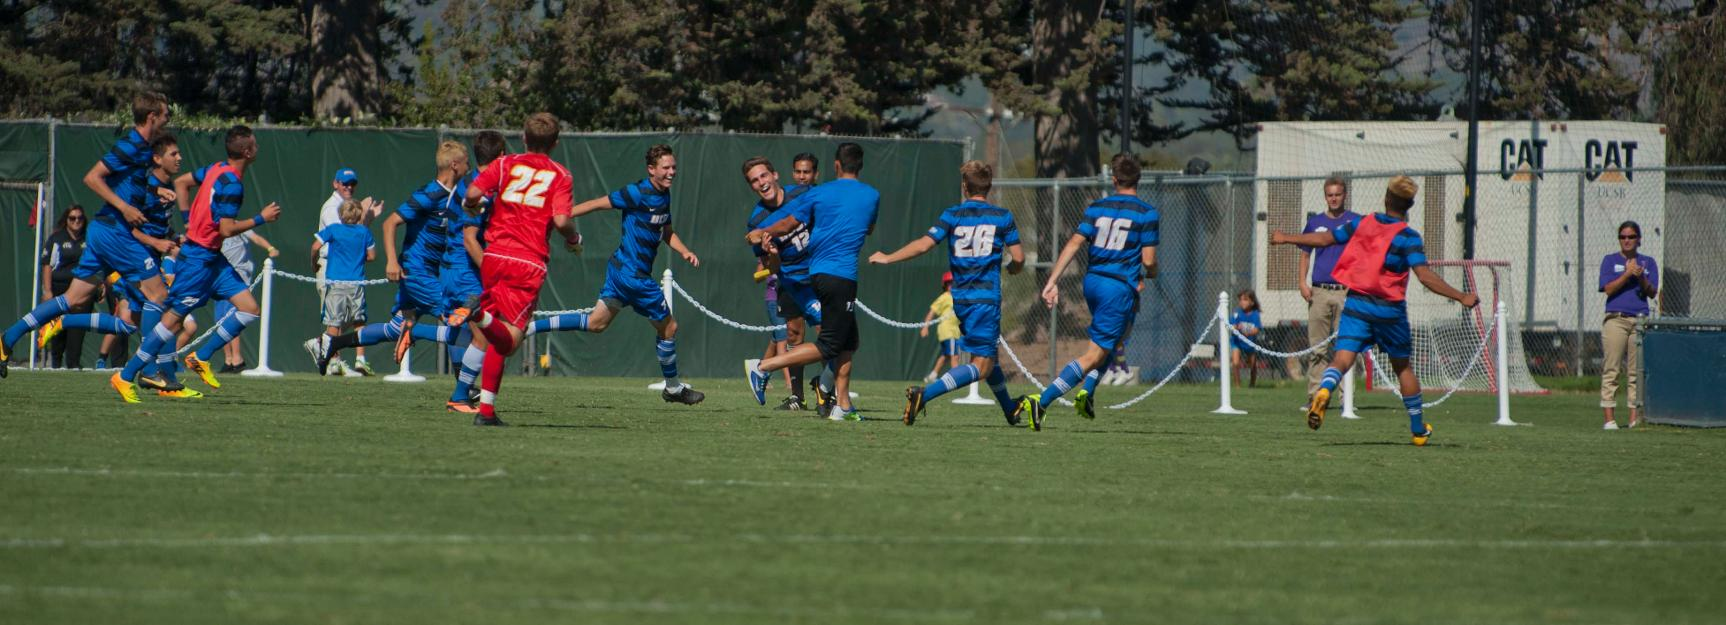 Charlie Miller and the Gauchos celebrate a golden goal (Photo by Tony Mastres)